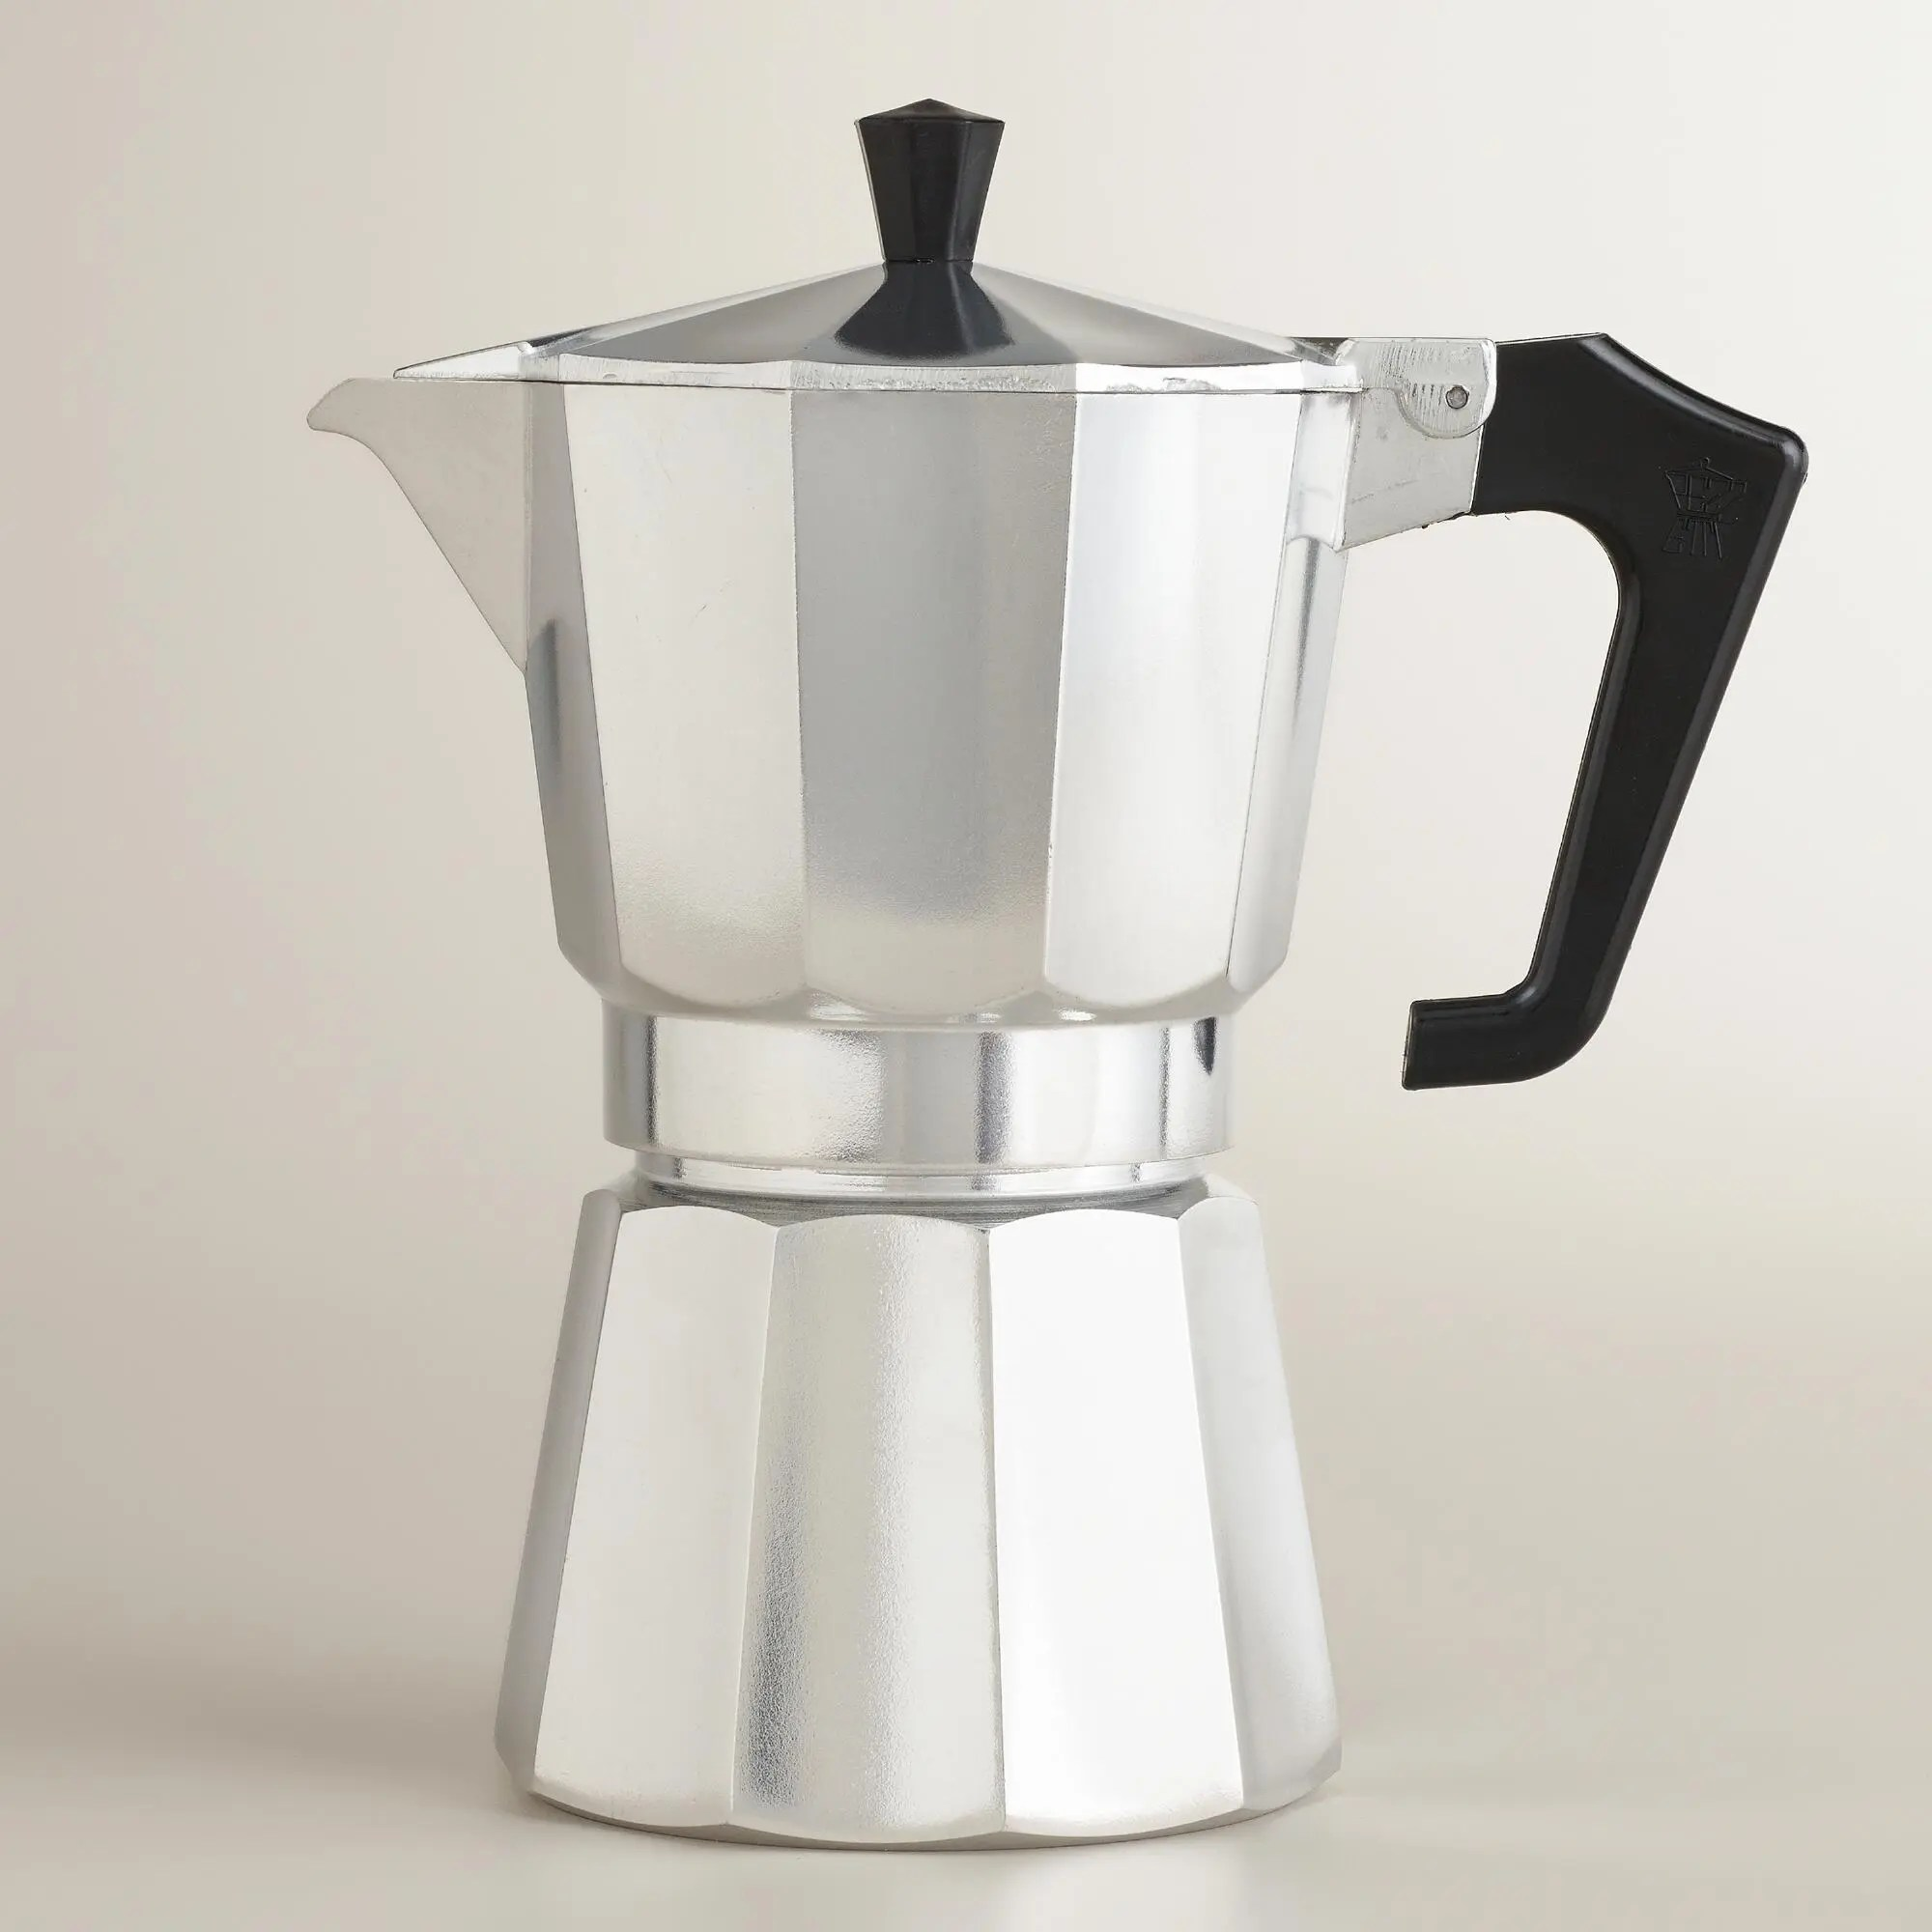 How to Get the Most Out of Your Moka Pot